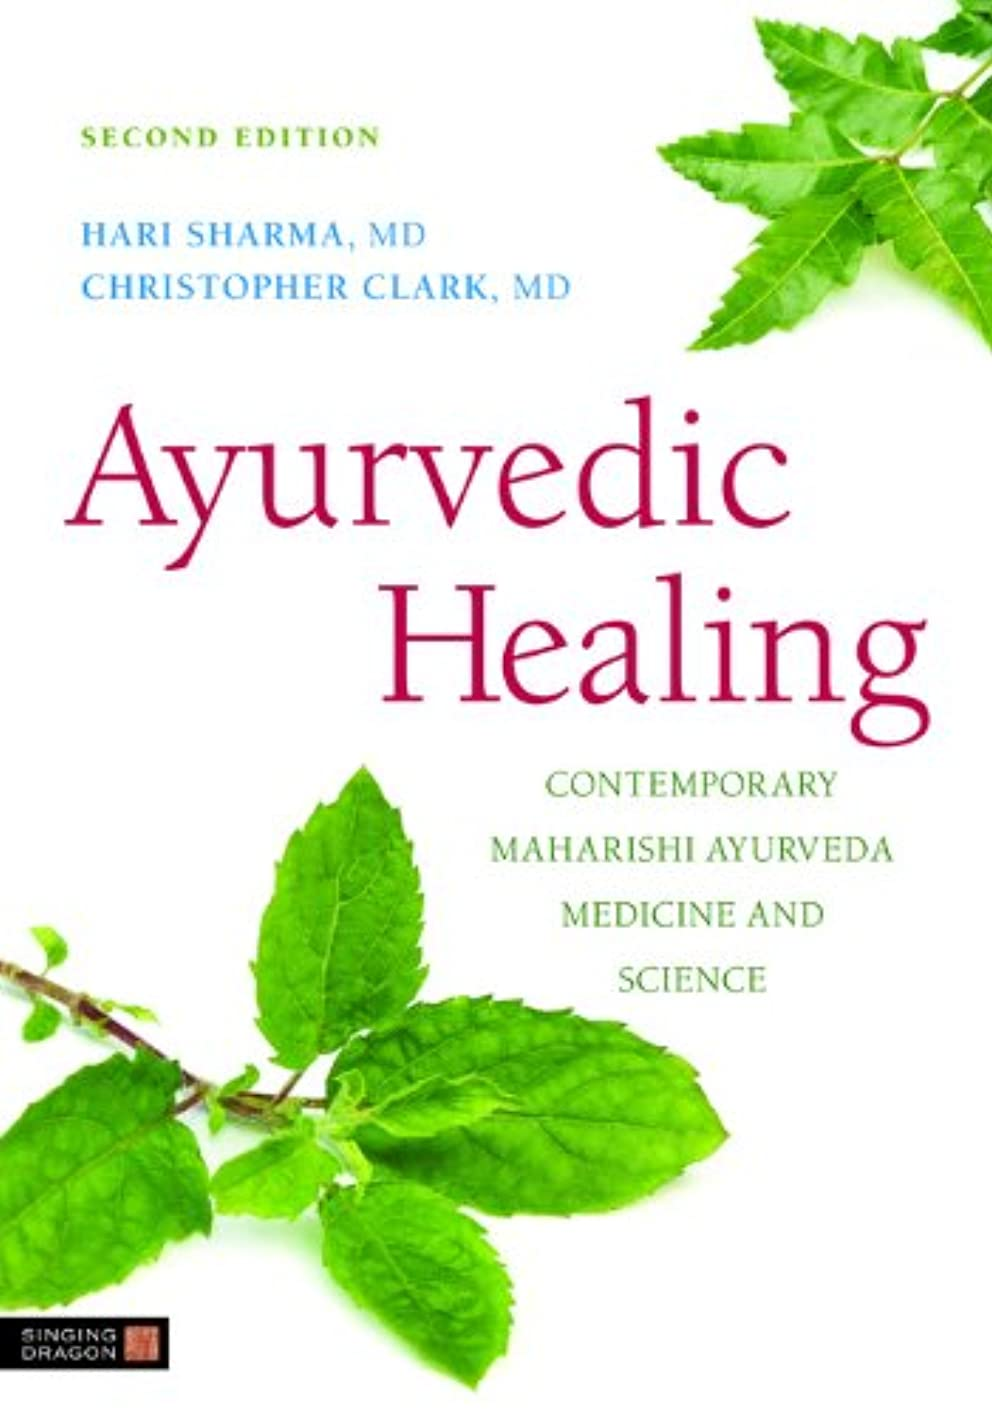 負微生物つぼみAyurvedic Healing: Contemporary Maharishi Ayurveda Medicine and Science Second Edition (English Edition)